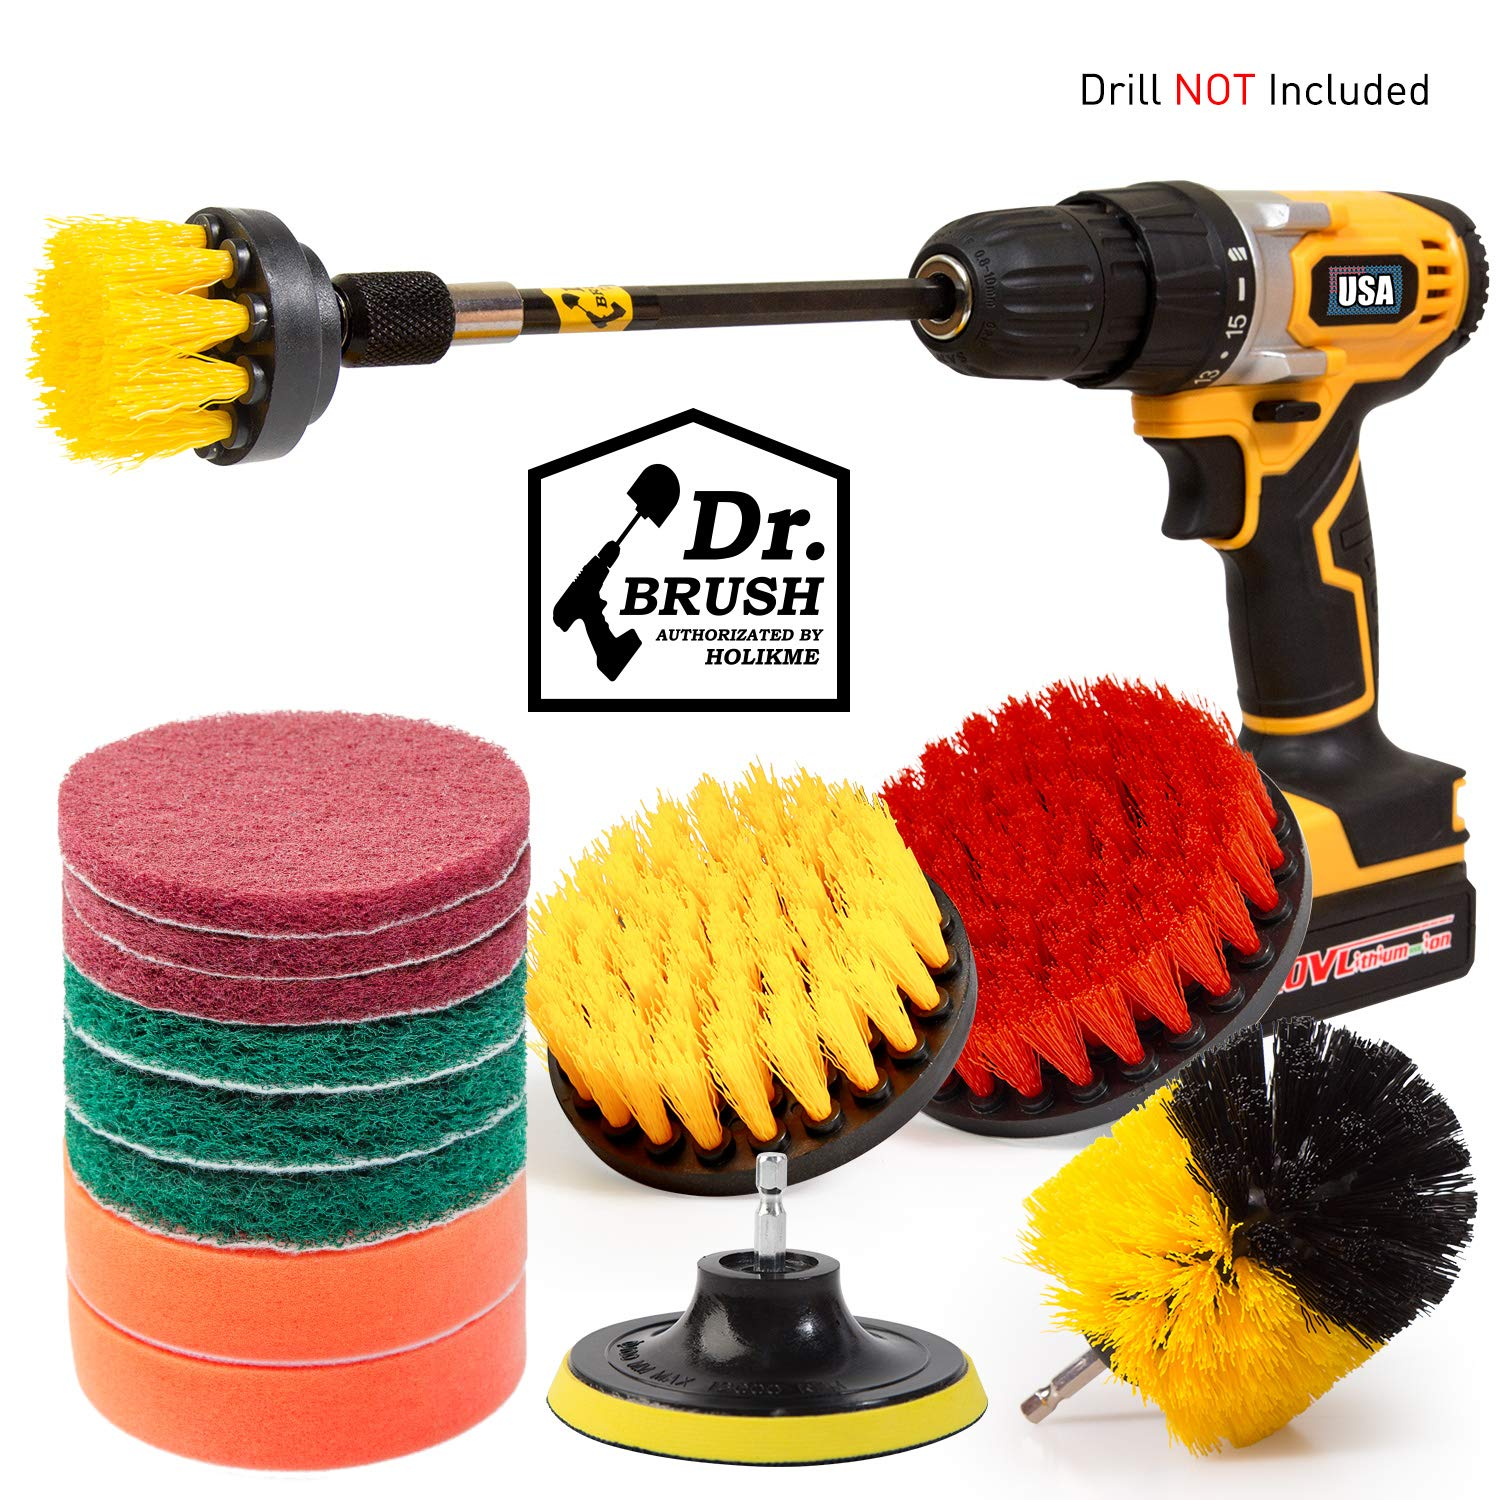 Holikme 14Piece Drill Brush Attachments Set, Scrub Pads & Sponge, Power Scrubber Brush with Extend Long Attachment All purpose Clean for Grout, Tiles, Sinks, Bathtub, Bathroom, Kitchen & Automobile